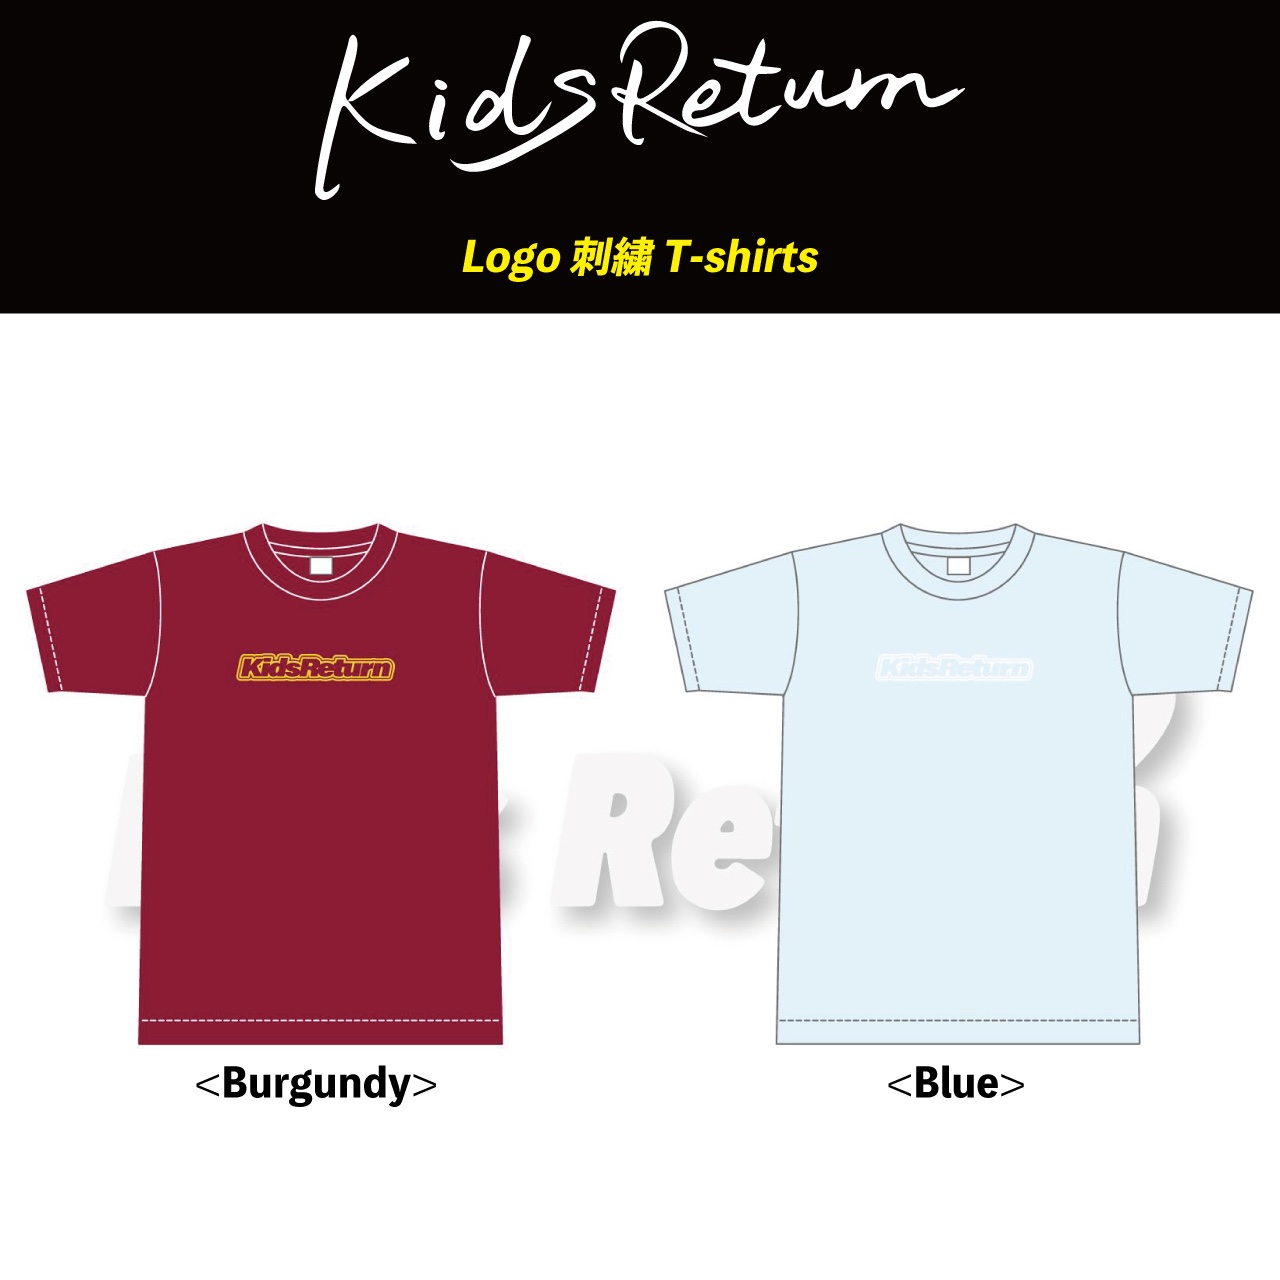 Kids Return LOGO 刺繍 T-shirts